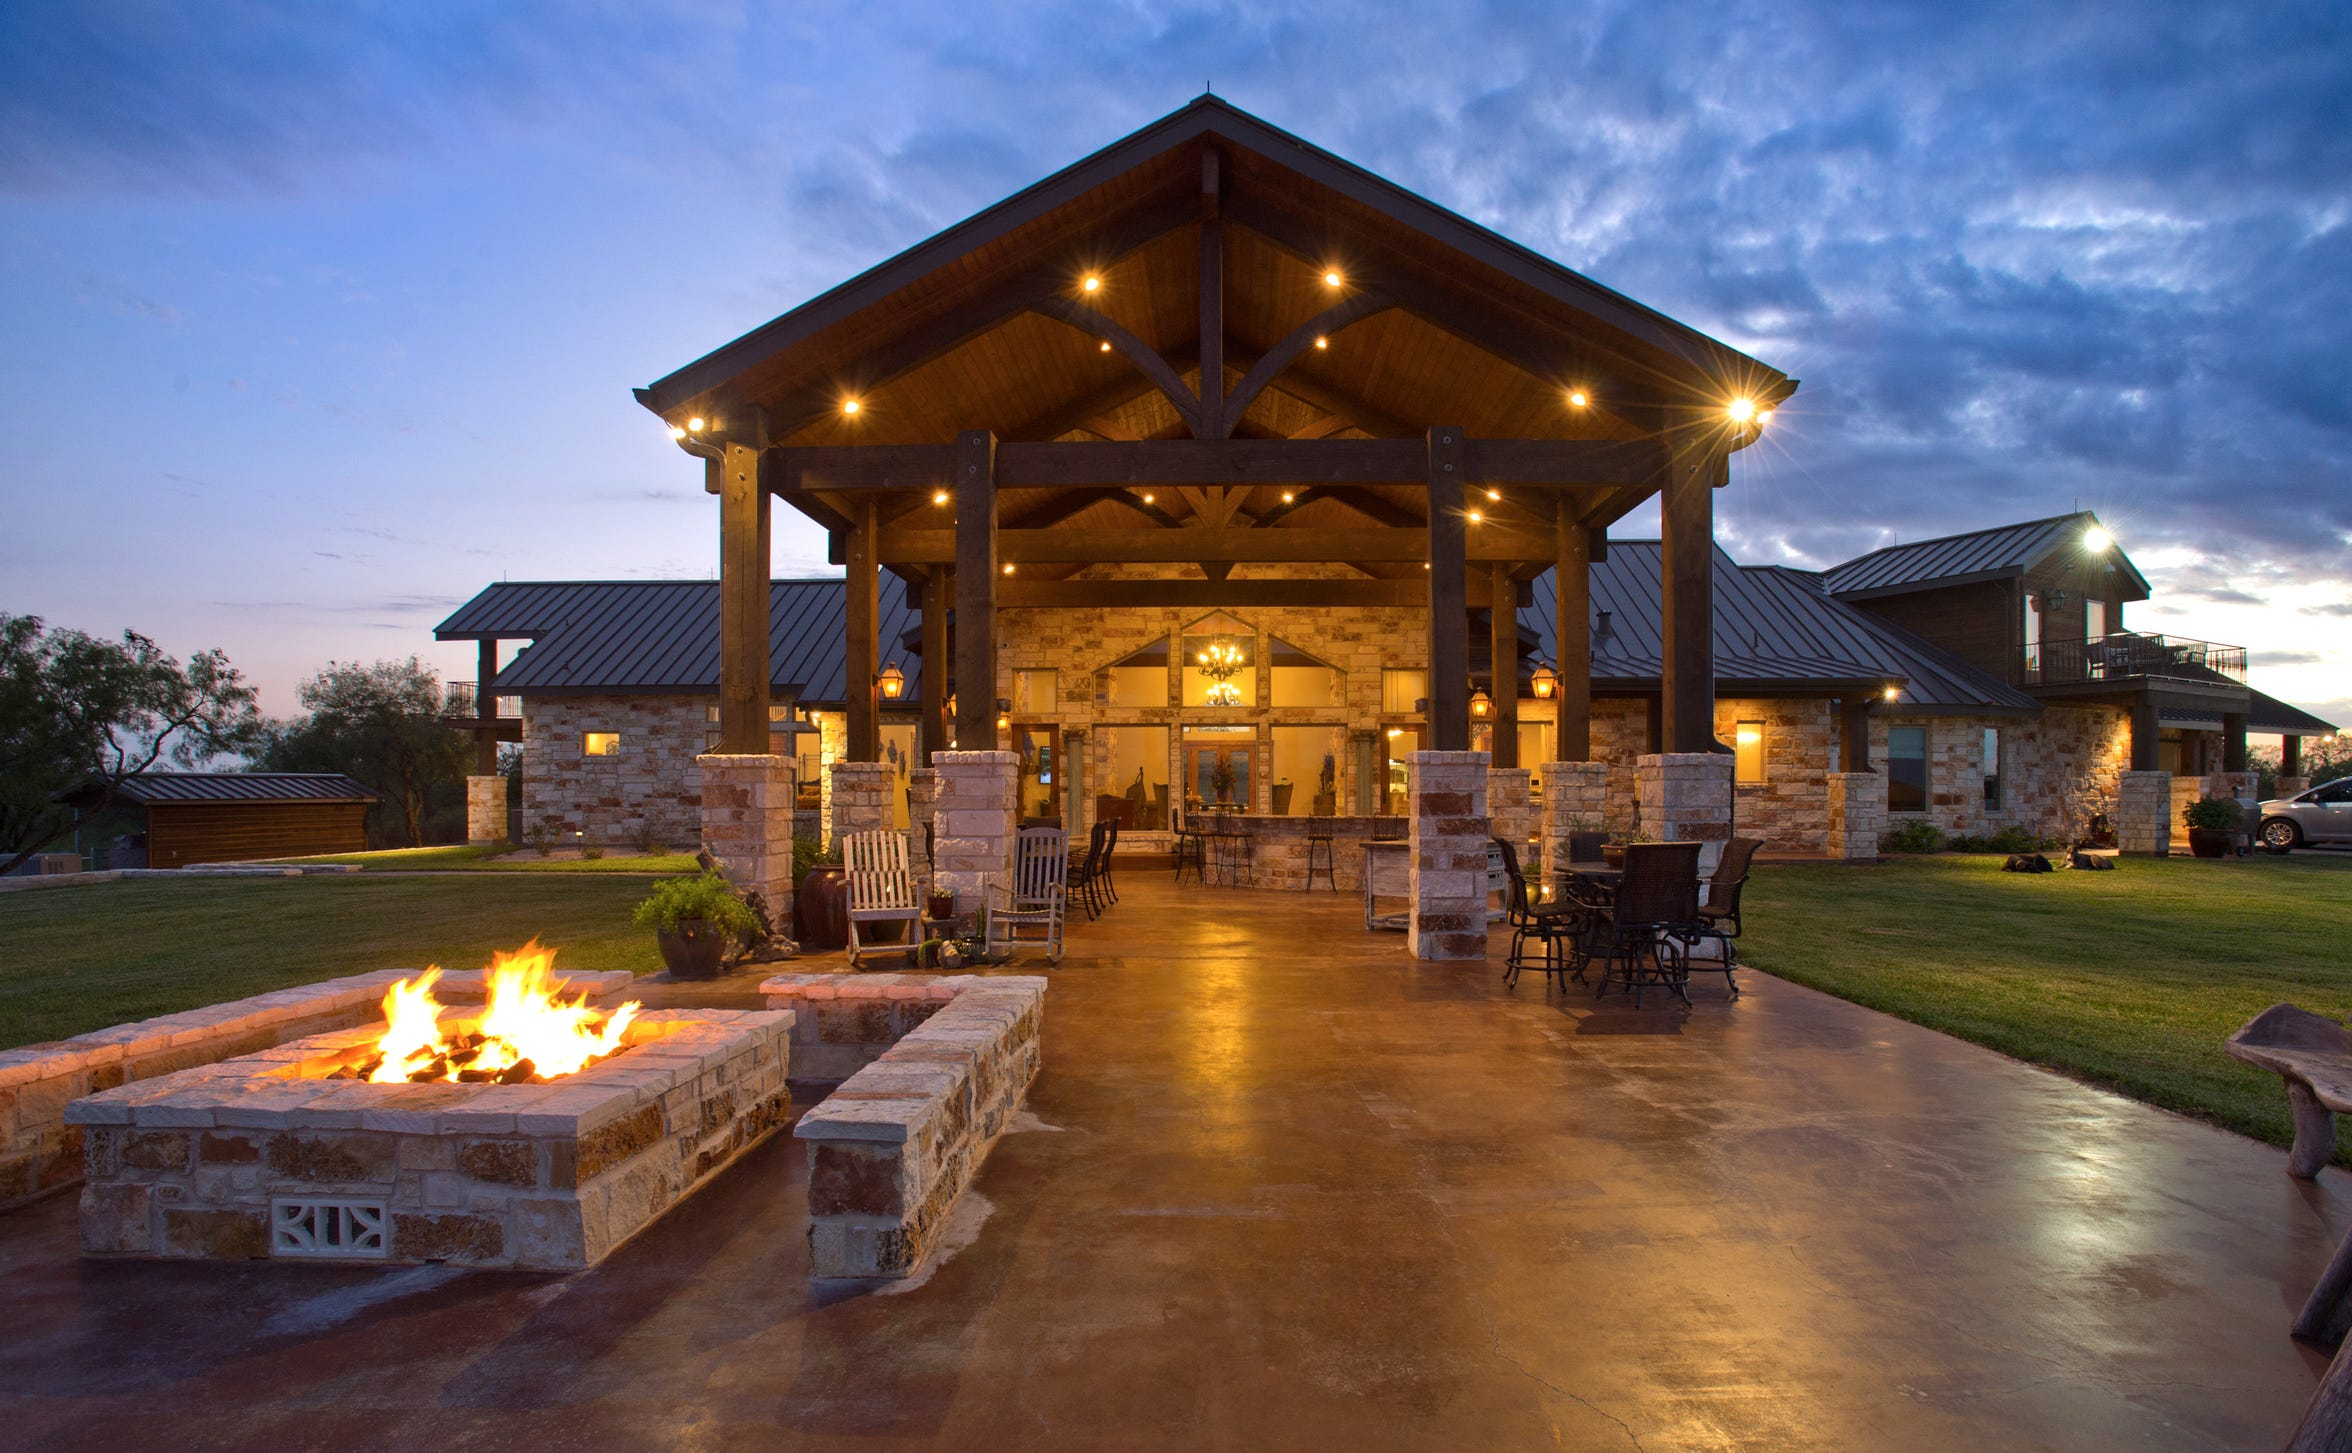 A stunning view of the massive outdoor living spaces featuring a fire pit and covered as well as open patio spaces overlooking the acreage and Nueces River